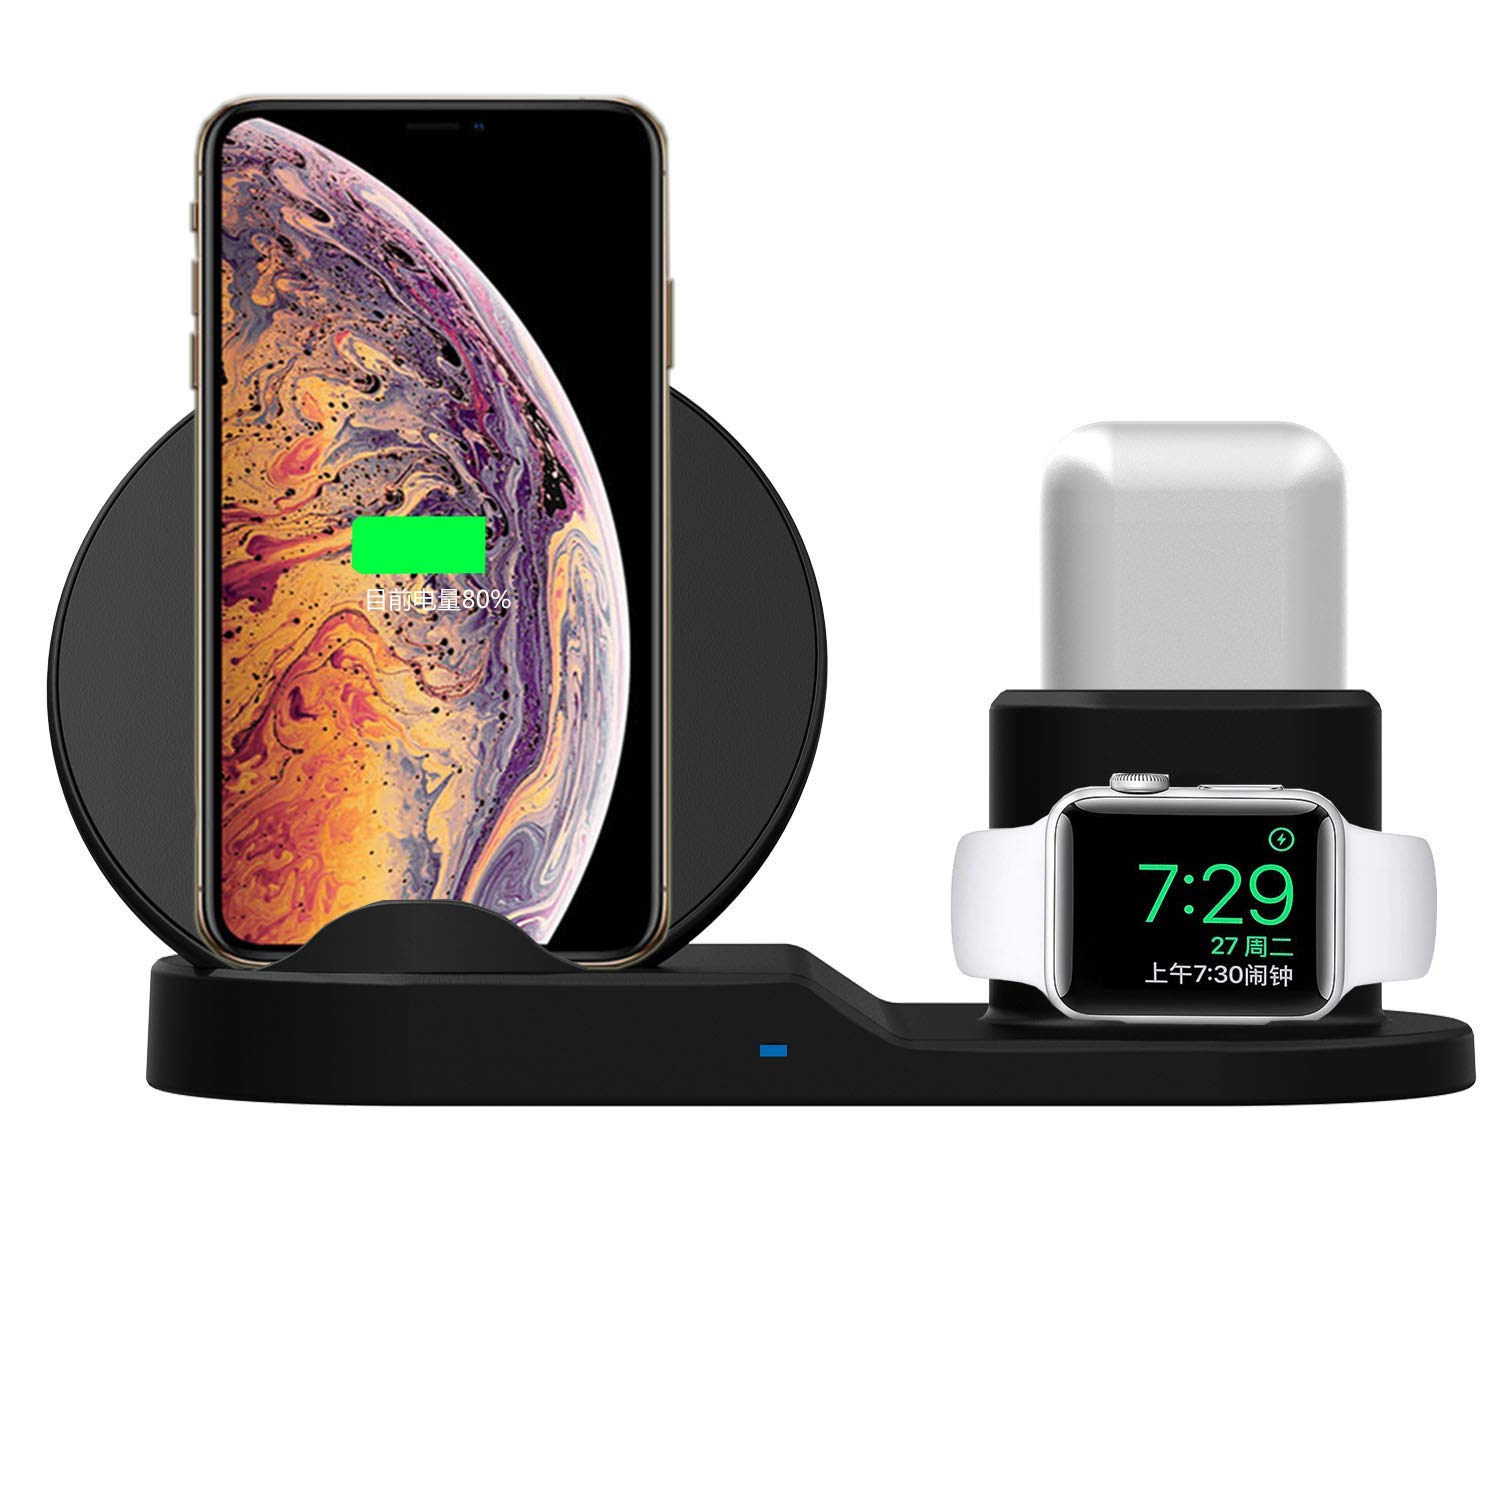 TOOBOSS 3 in 1 Wireless Charger,10W Qi Fast Wireless Charger Stand Compatible with iPhone Xs Max/XR/Samsung S10 S9+ Note 8,Wireless Charging Station Compatible with Apple iWatch Series 1/2/3/4,AirPods